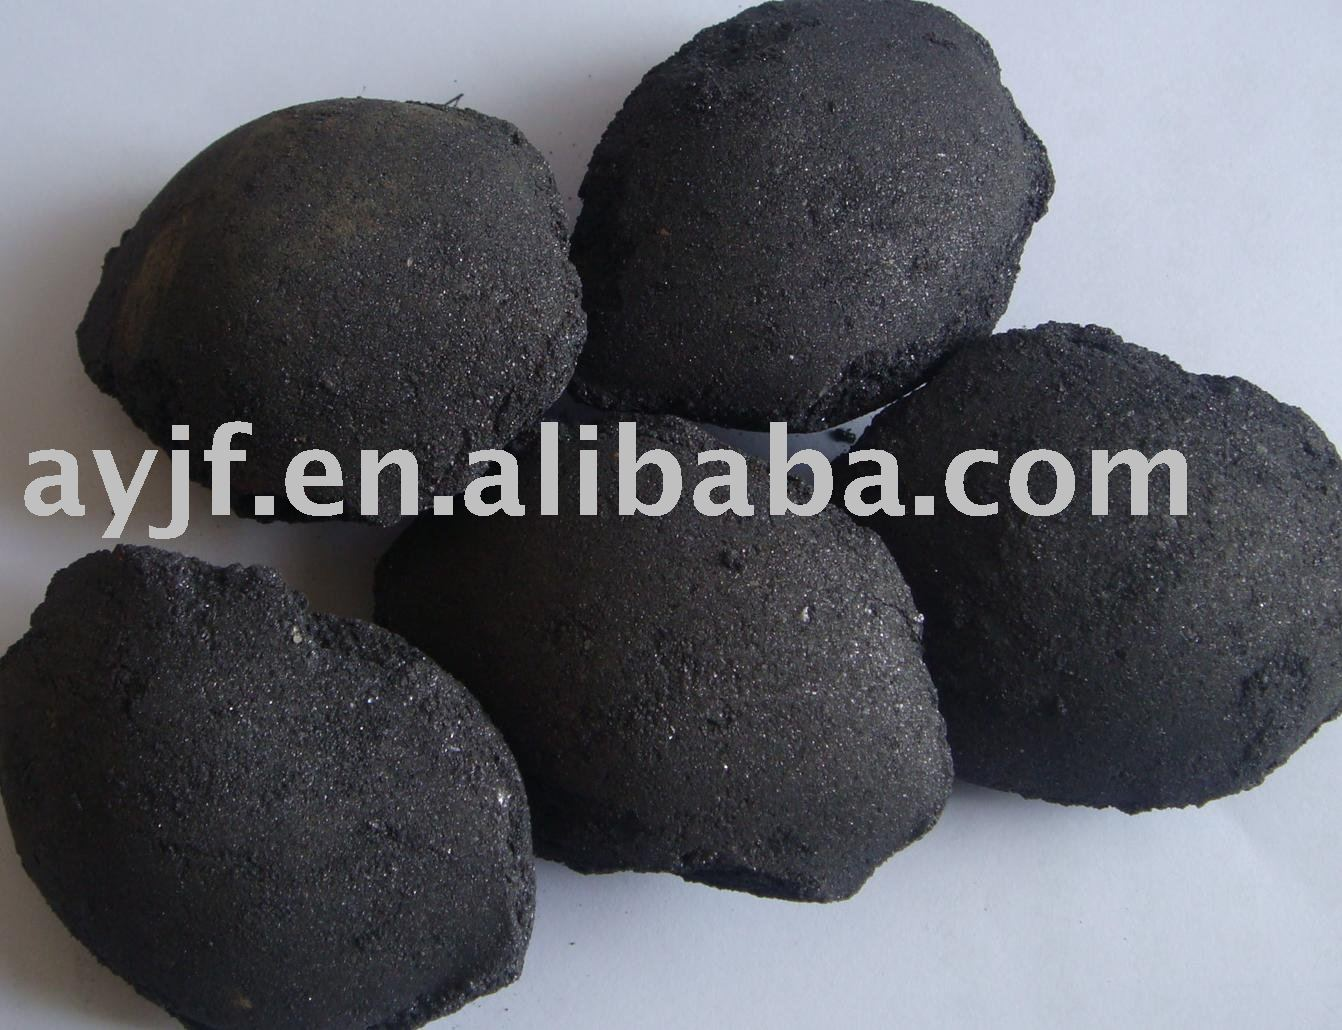 Anyang Jinfang metallurgy Co.,ltd cab supply Ferro Silicon Briquette from China